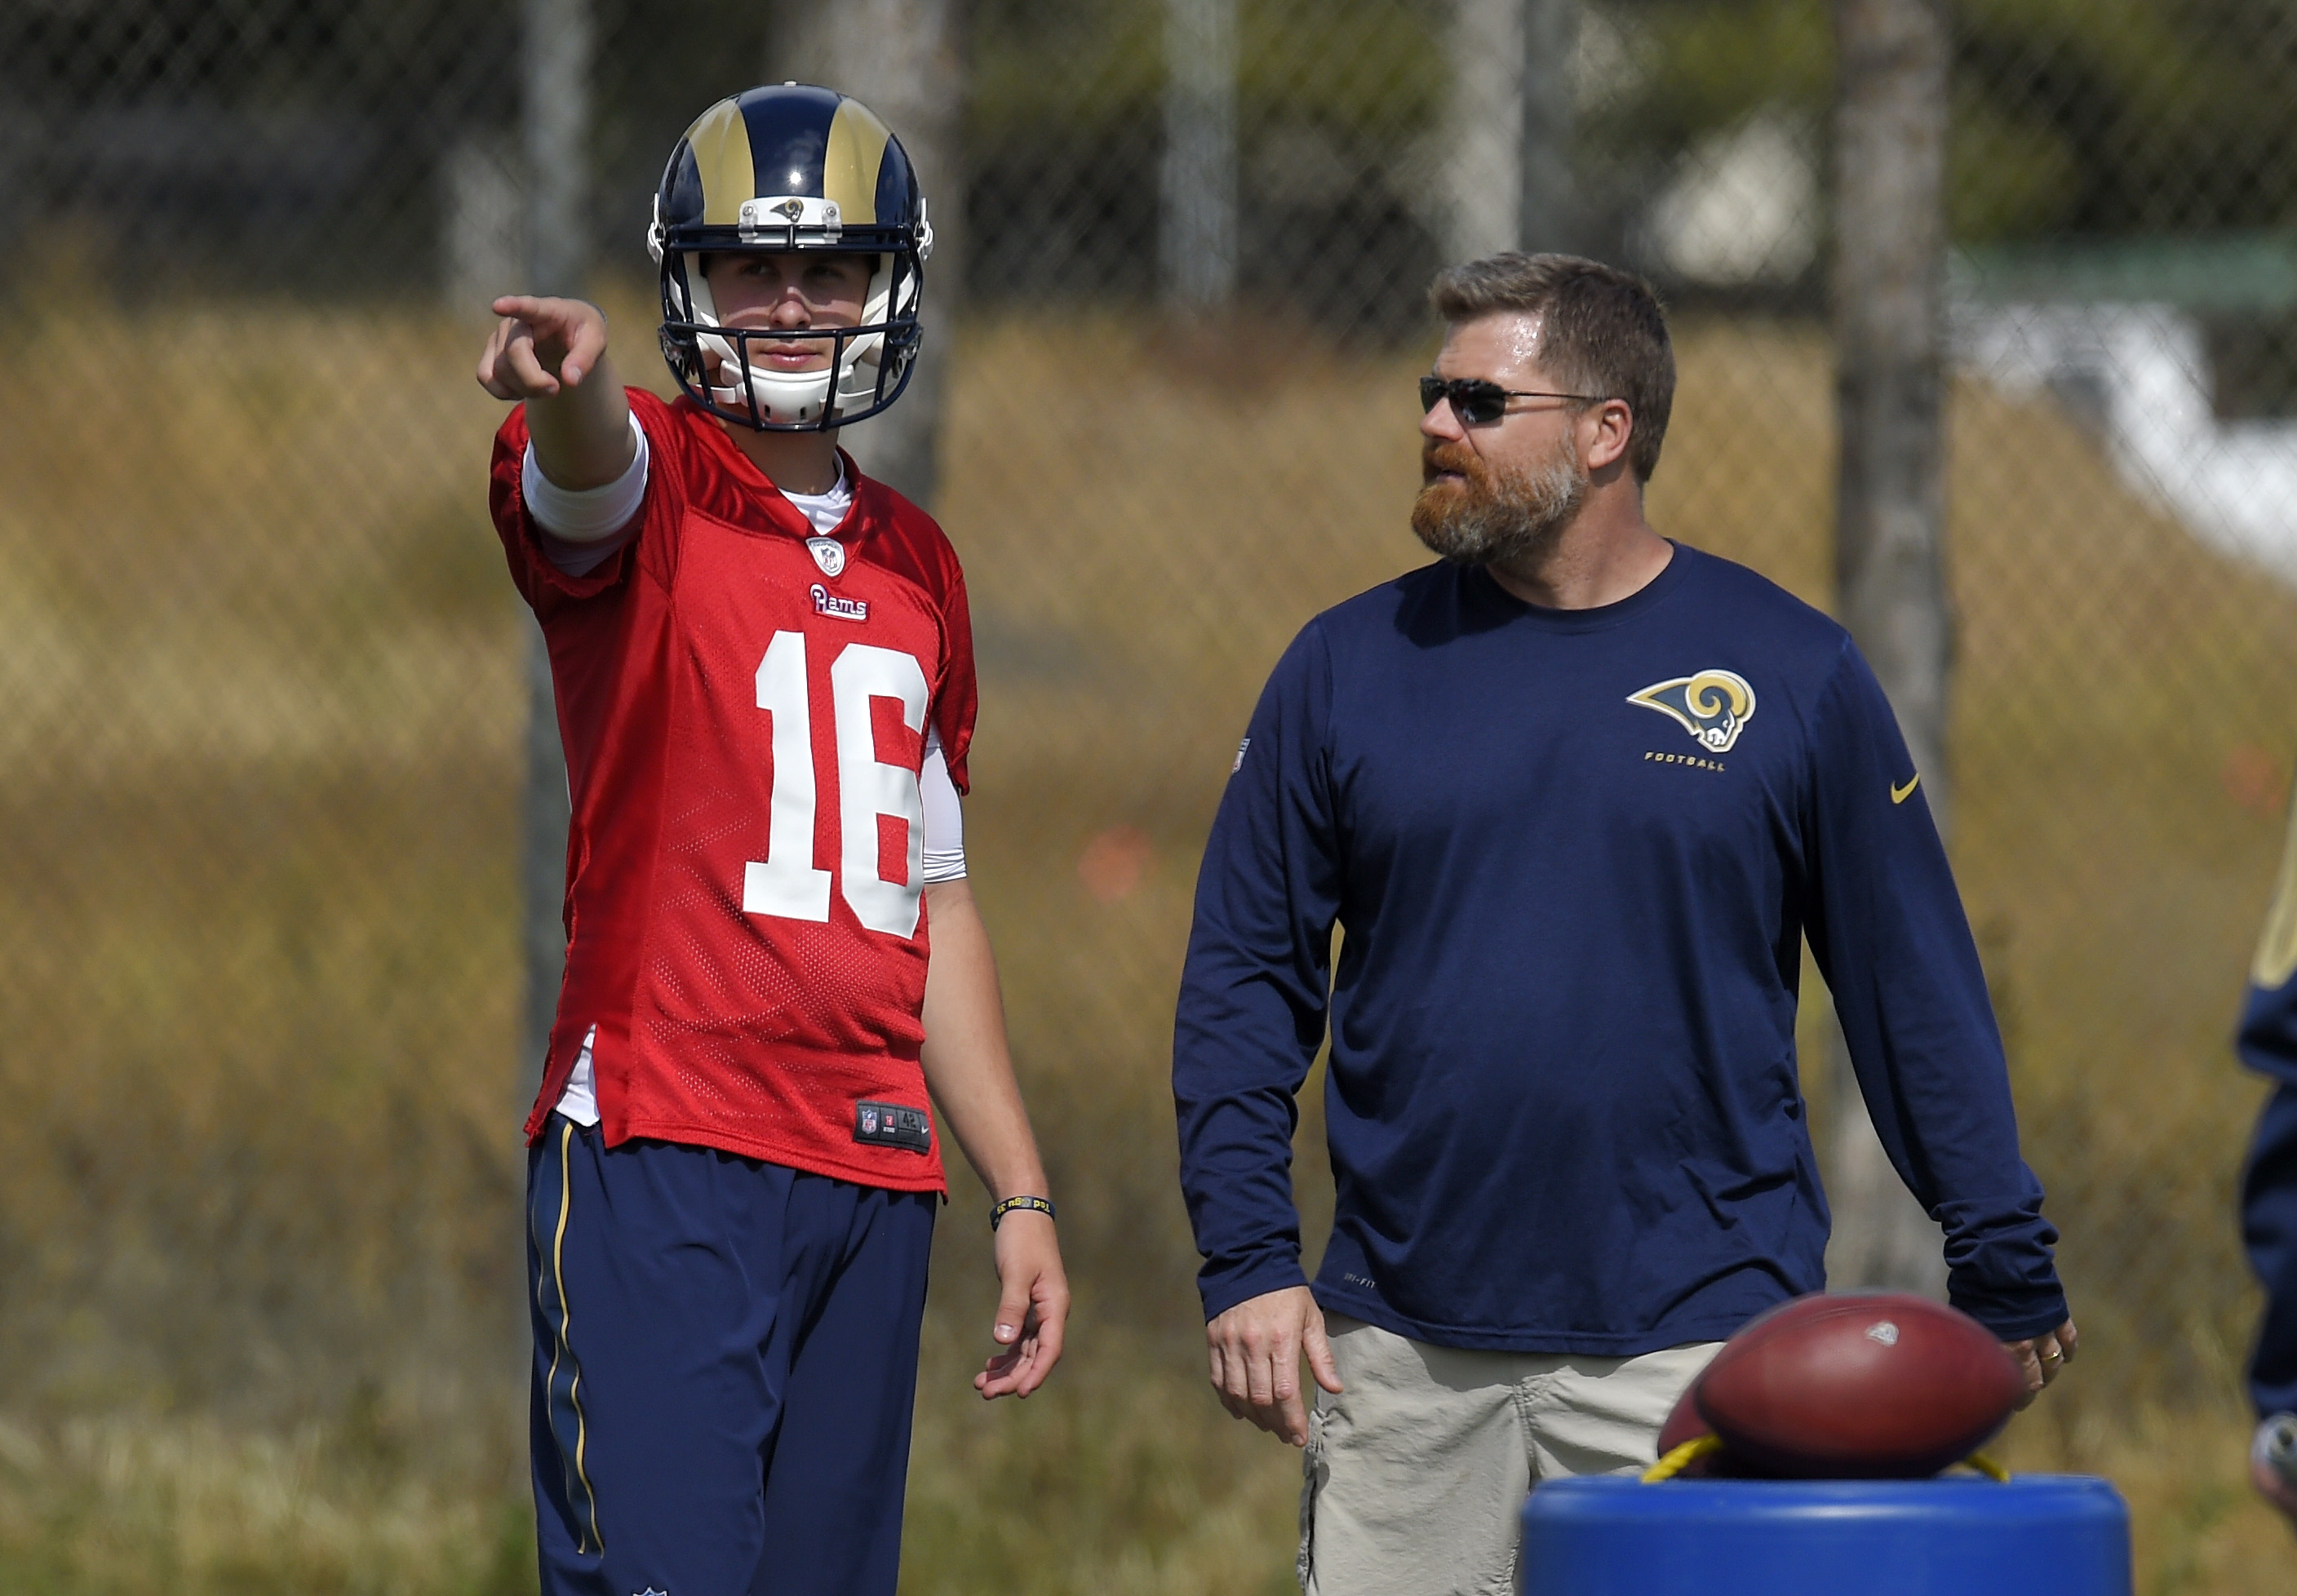 Los Angeles Rams quarterback Jared Goff, left, talks with offensive coordinator Rob Boras during Rams rookie minicamp, Friday, May 6, 2016, in Oxnard, Calif. (AP Photo/Mark J. Terrill)